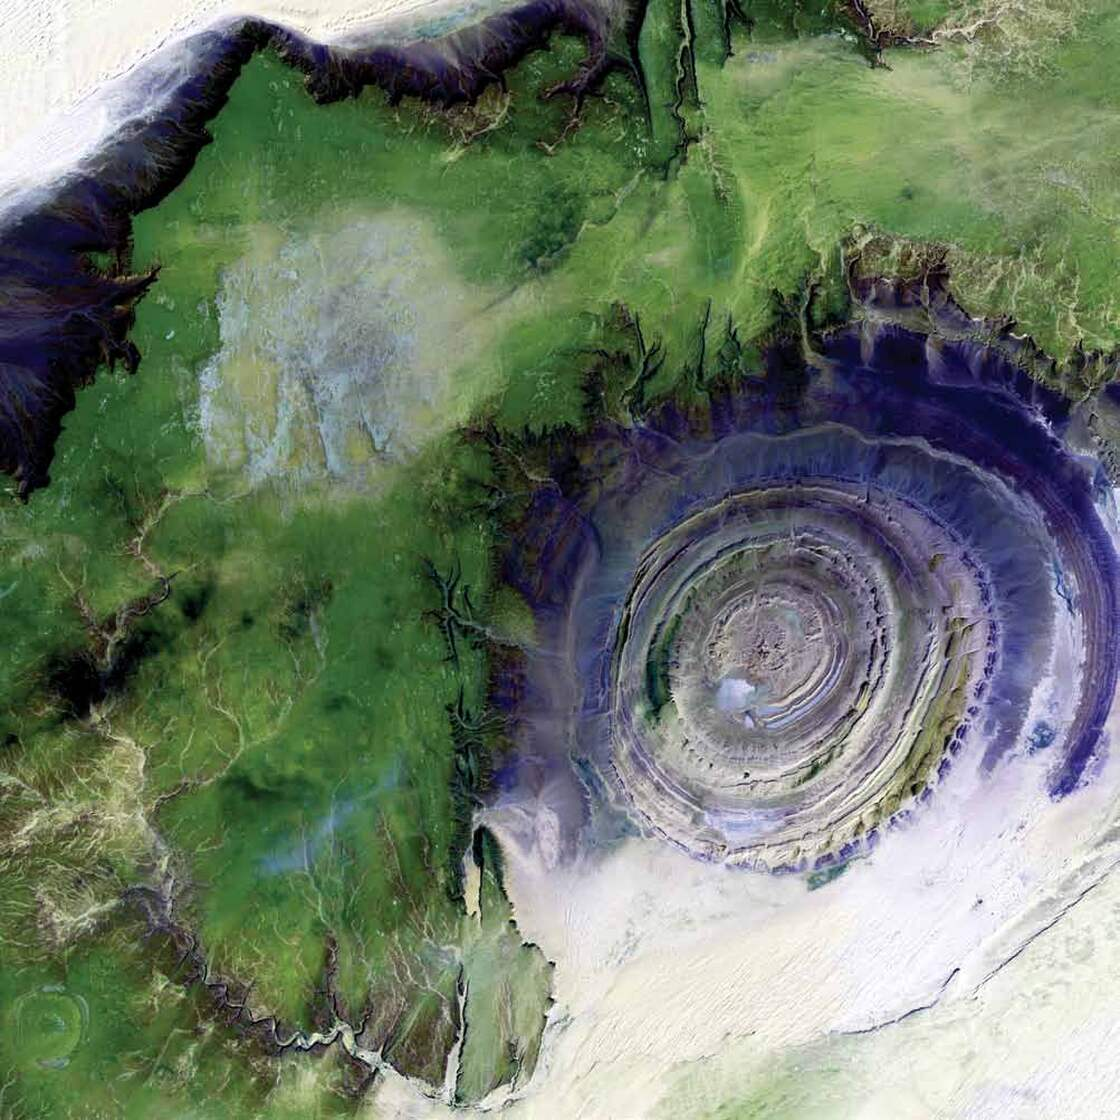 Richat Structure, Mauritania, 2001The 31-mile-wide bull's-eye in the western Sahara is a landmark for astronauts. The structure formed when a volcanic dome hardened and gradually eroded, exposing the onion-like layers of rock. Desert sands appear white and pale yellow at the corners; less sandy, rocky areas are green; and volcanic rocks are blue.